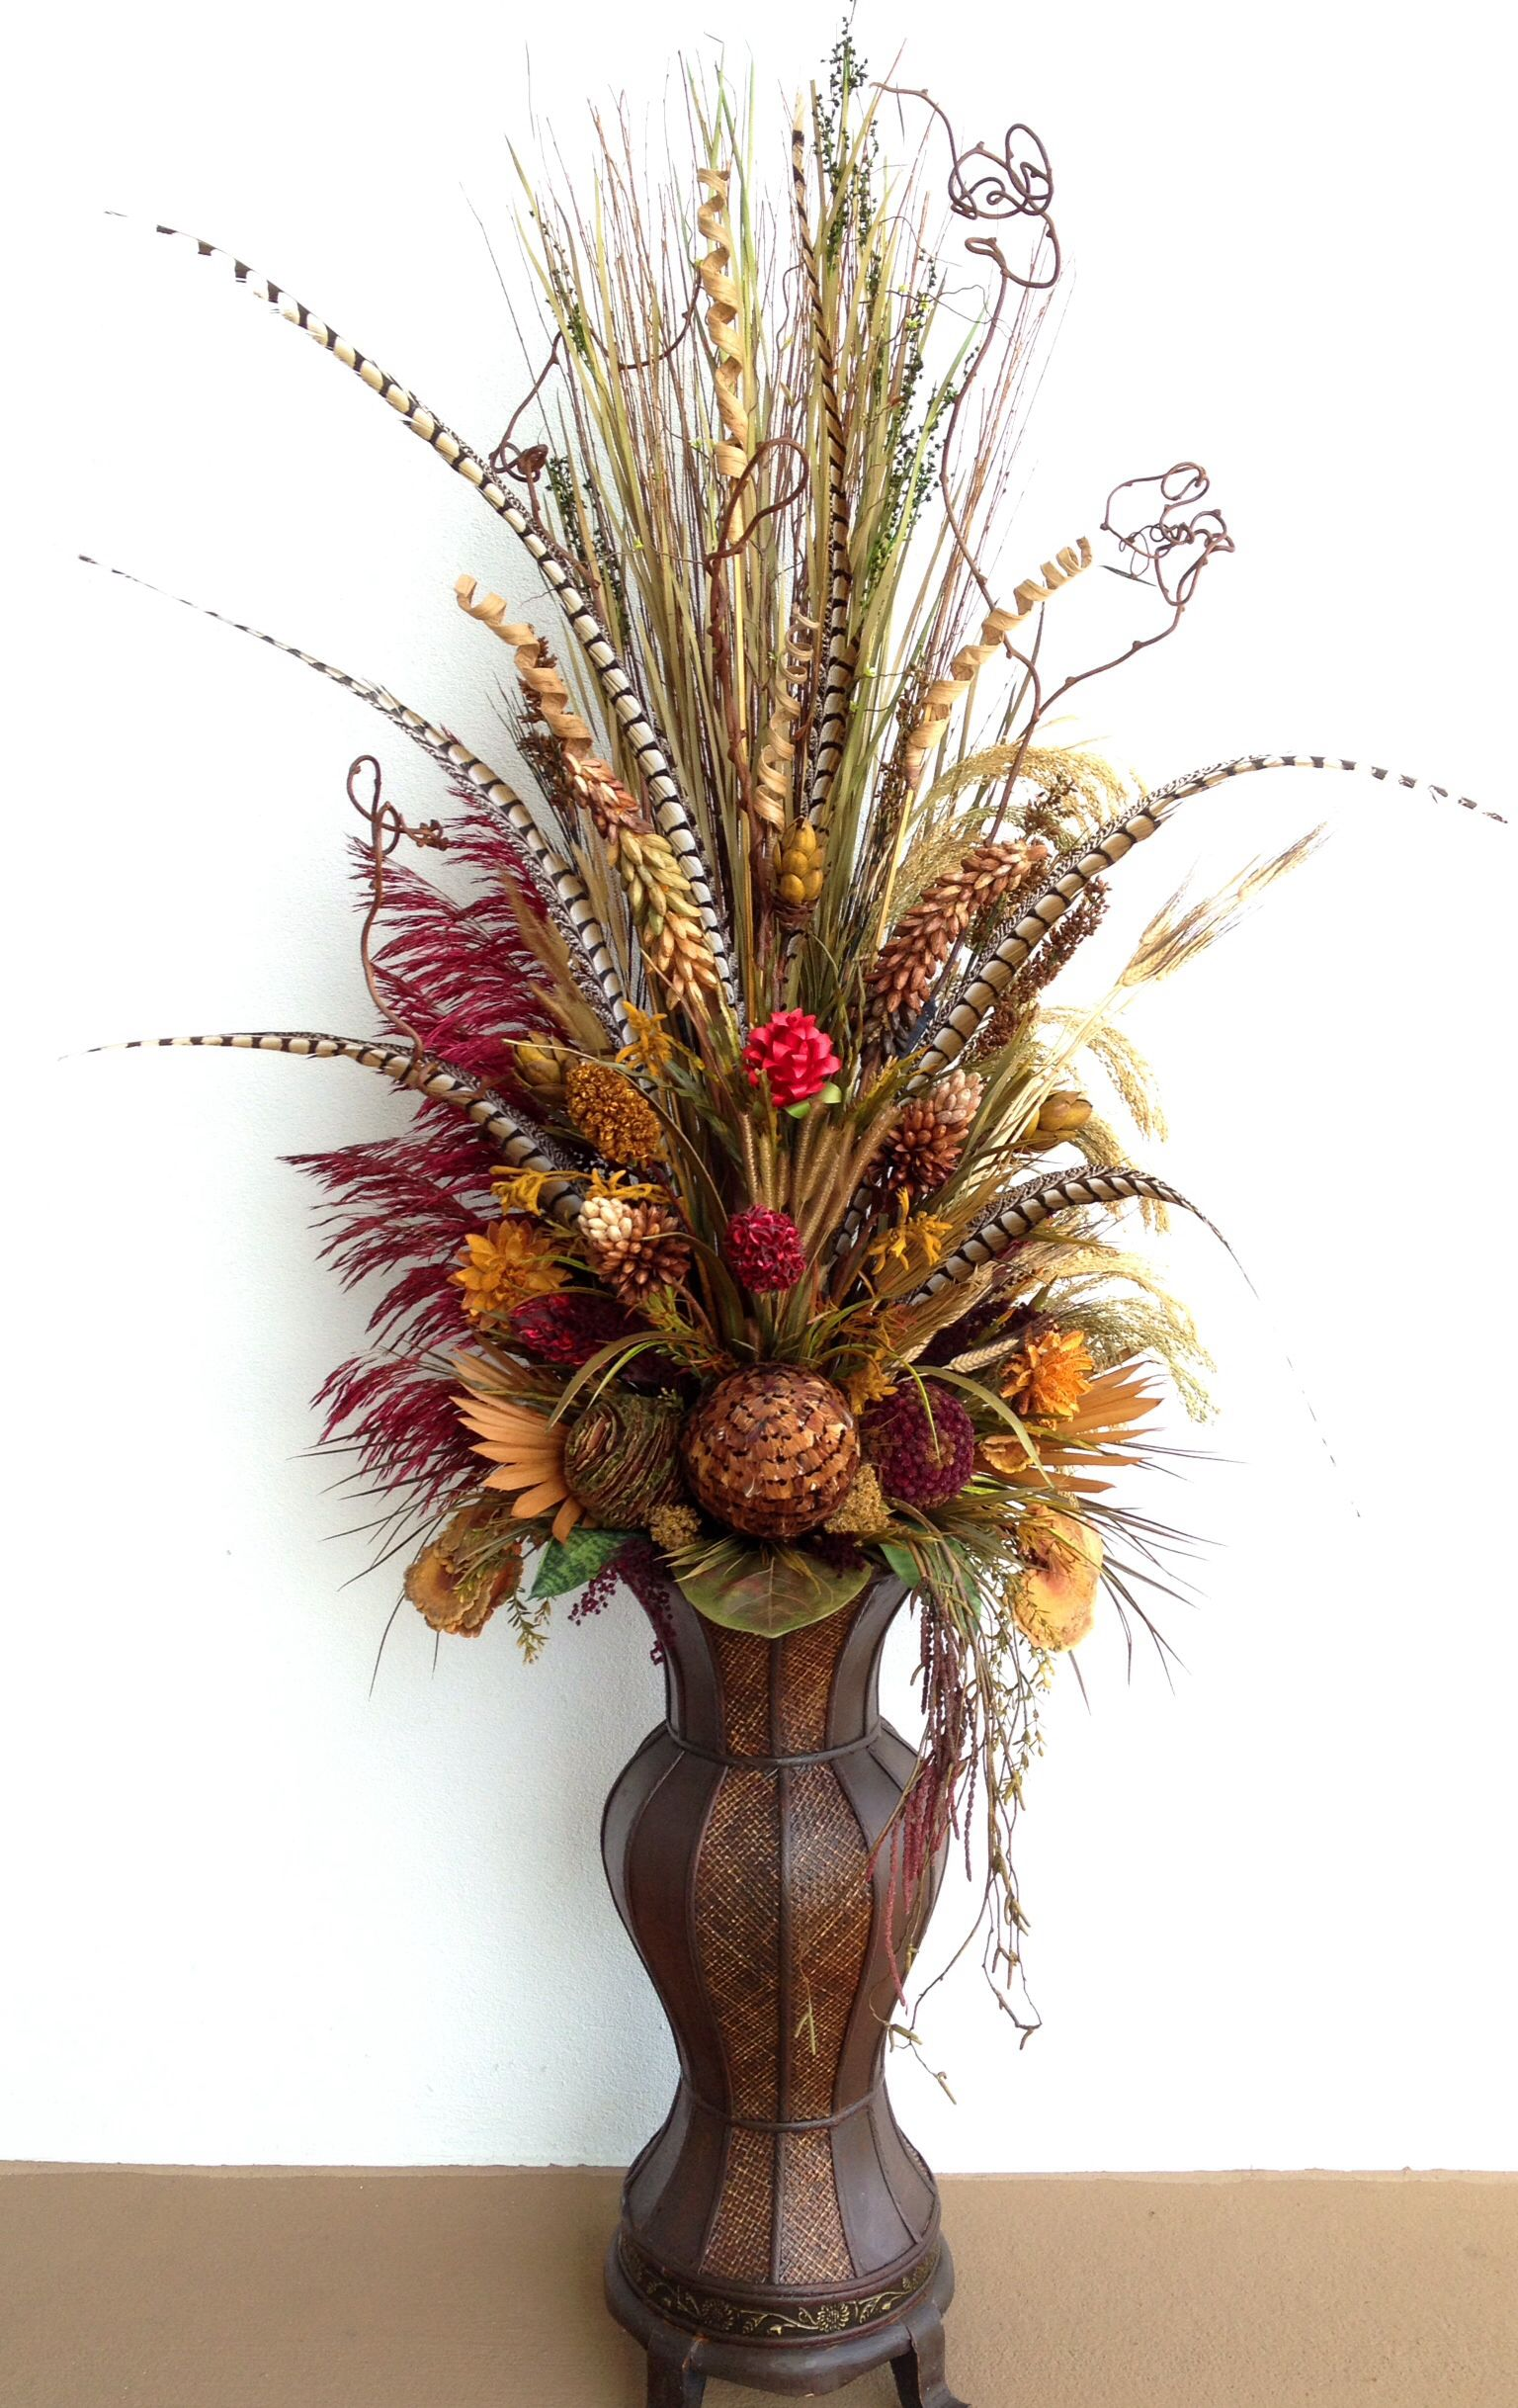 Six Feet Tall Dried Floral Arrangement With Pheasant Feathers By